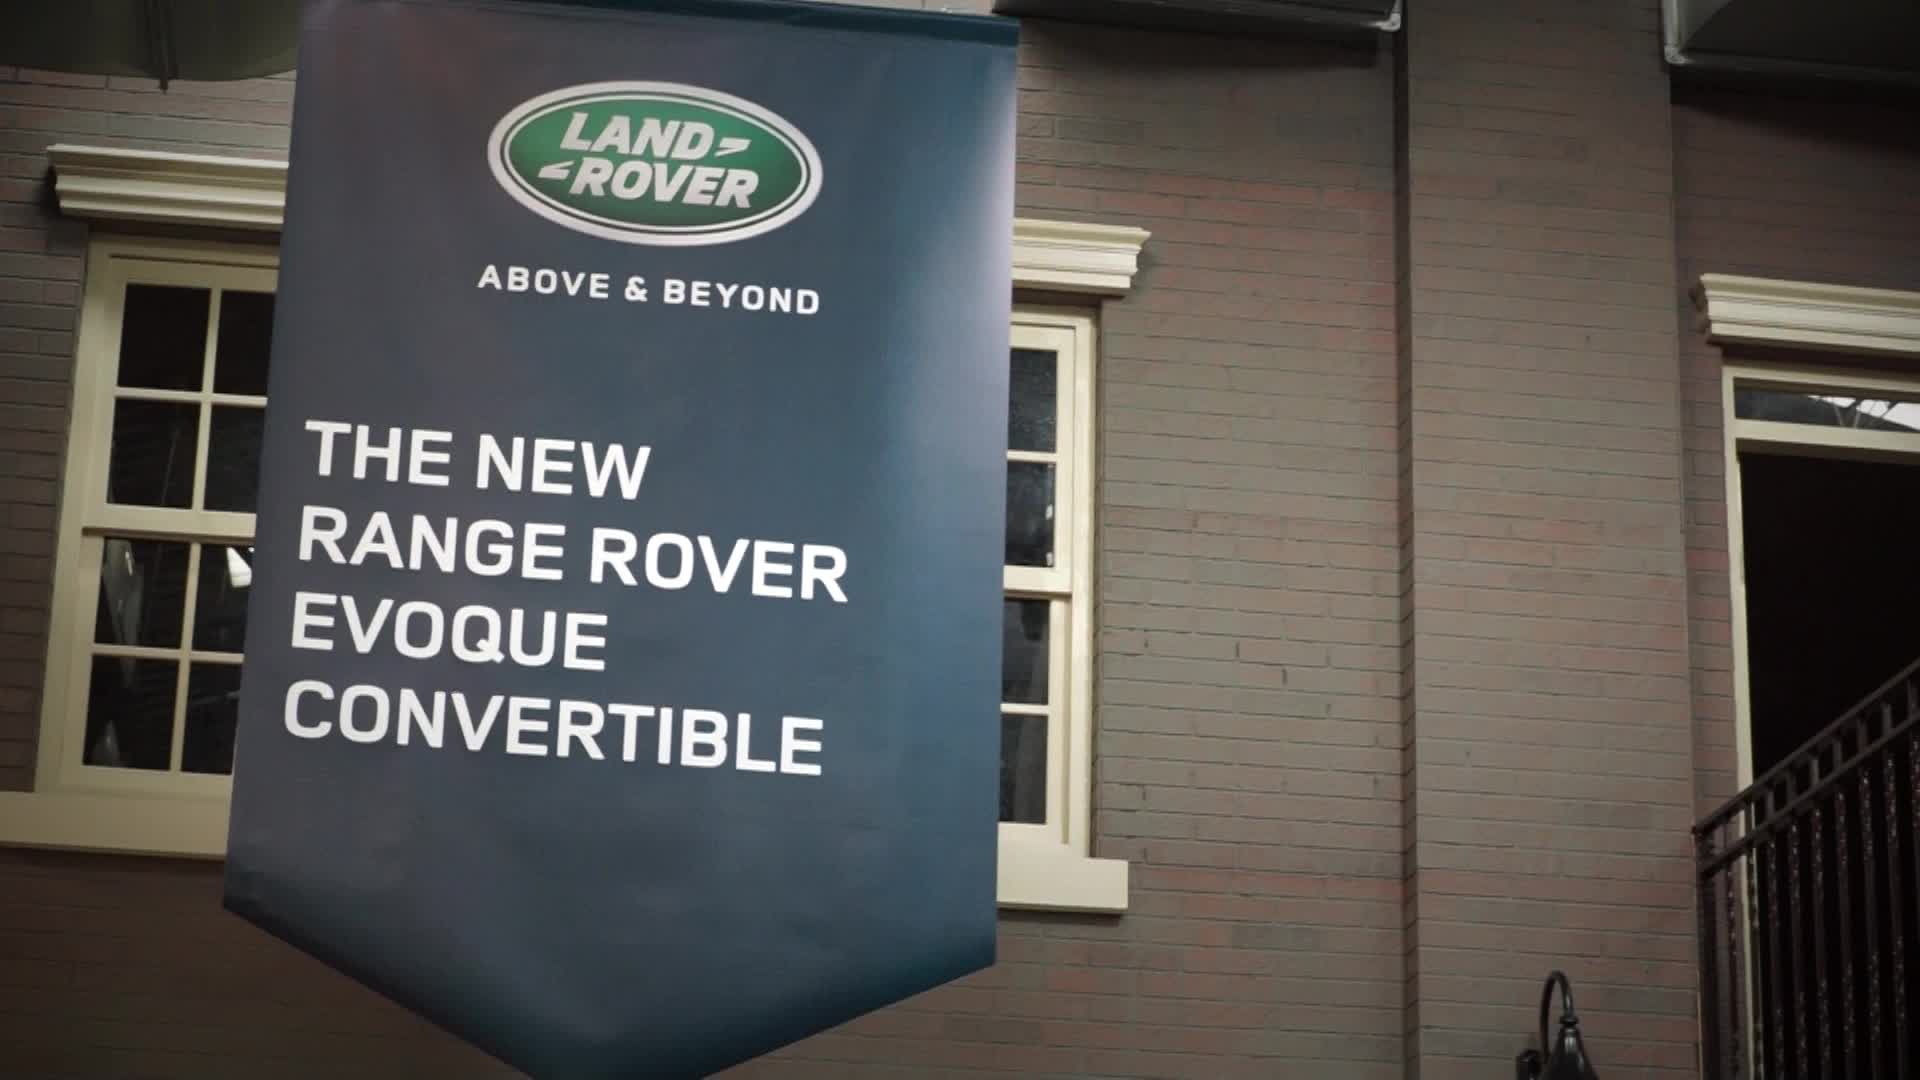 New Range Rover Evoque Convertible | 上市記者會